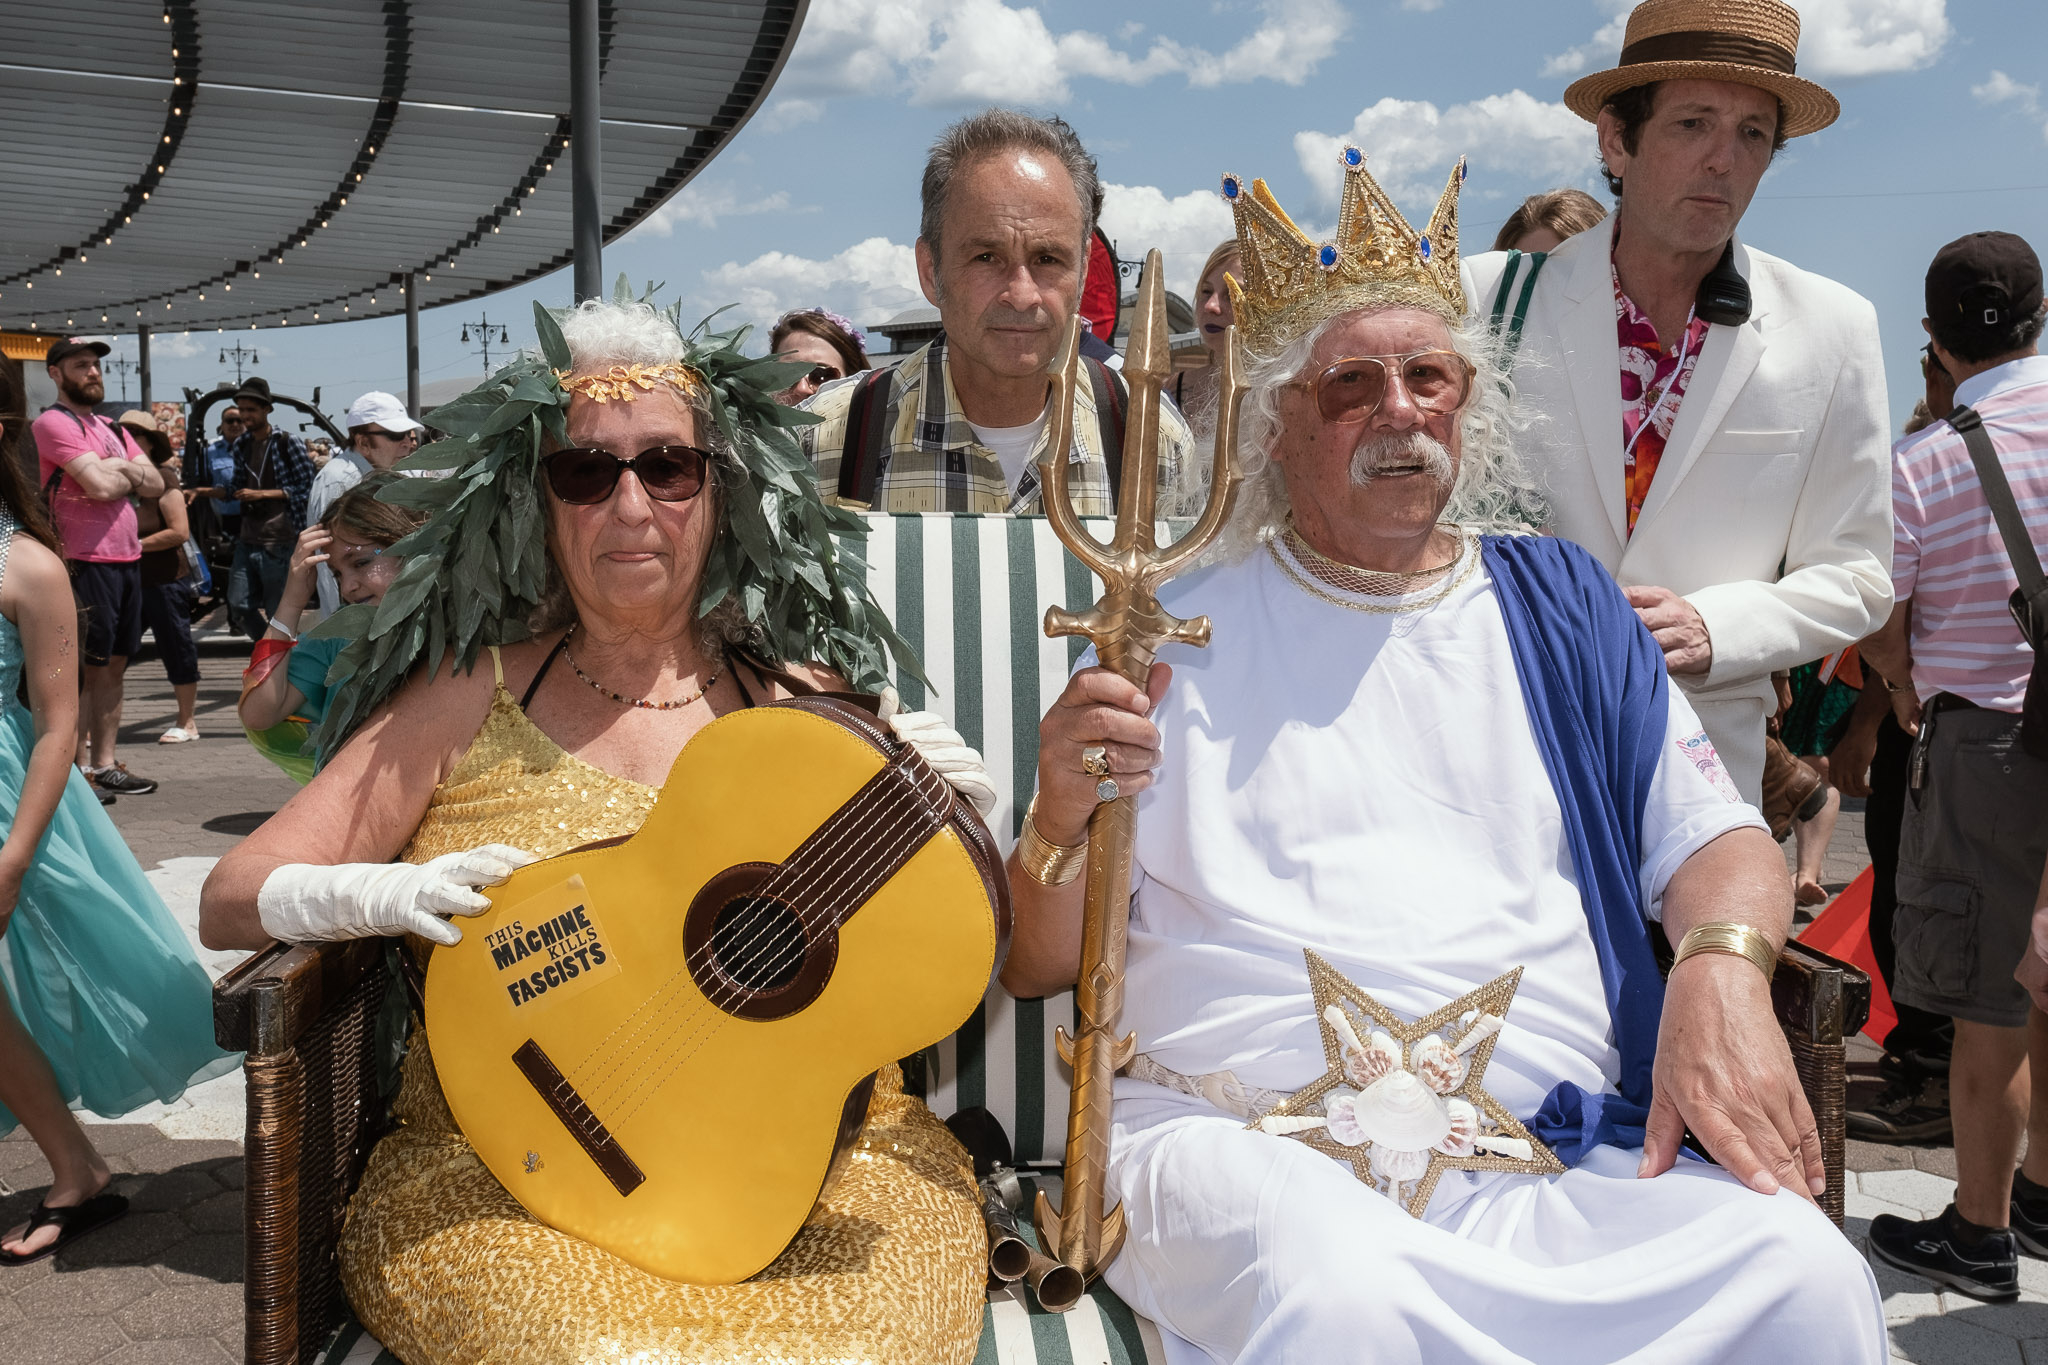 Mermaid Parade King & Queen: Nora & Arlo Guthrie